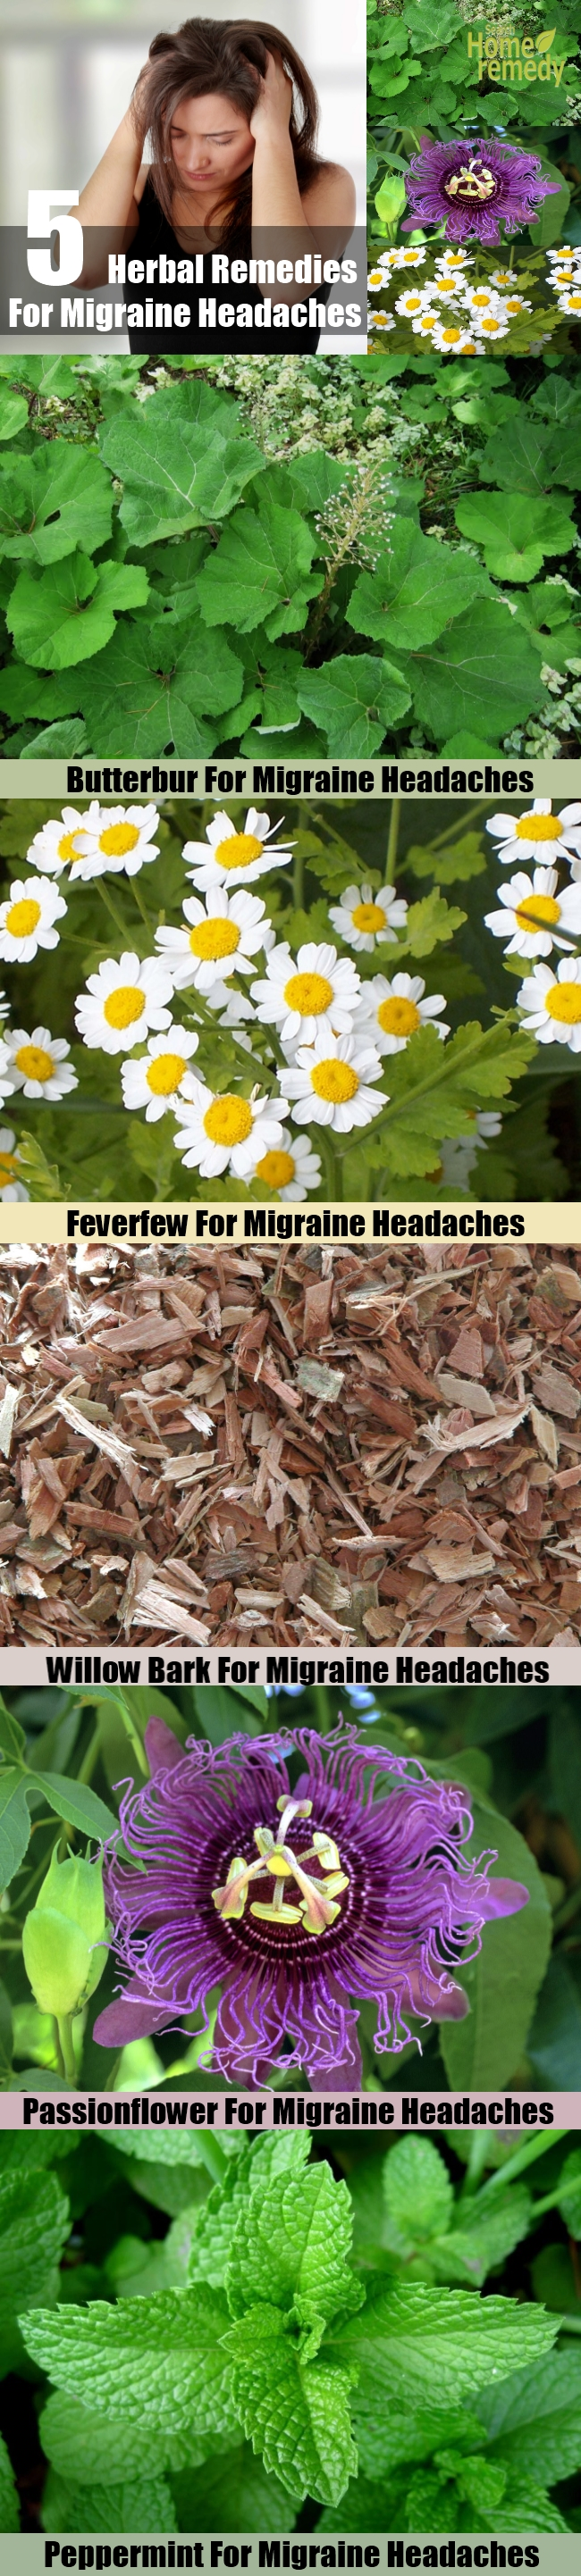 5 Herbal Remedies For Migraine Headaches